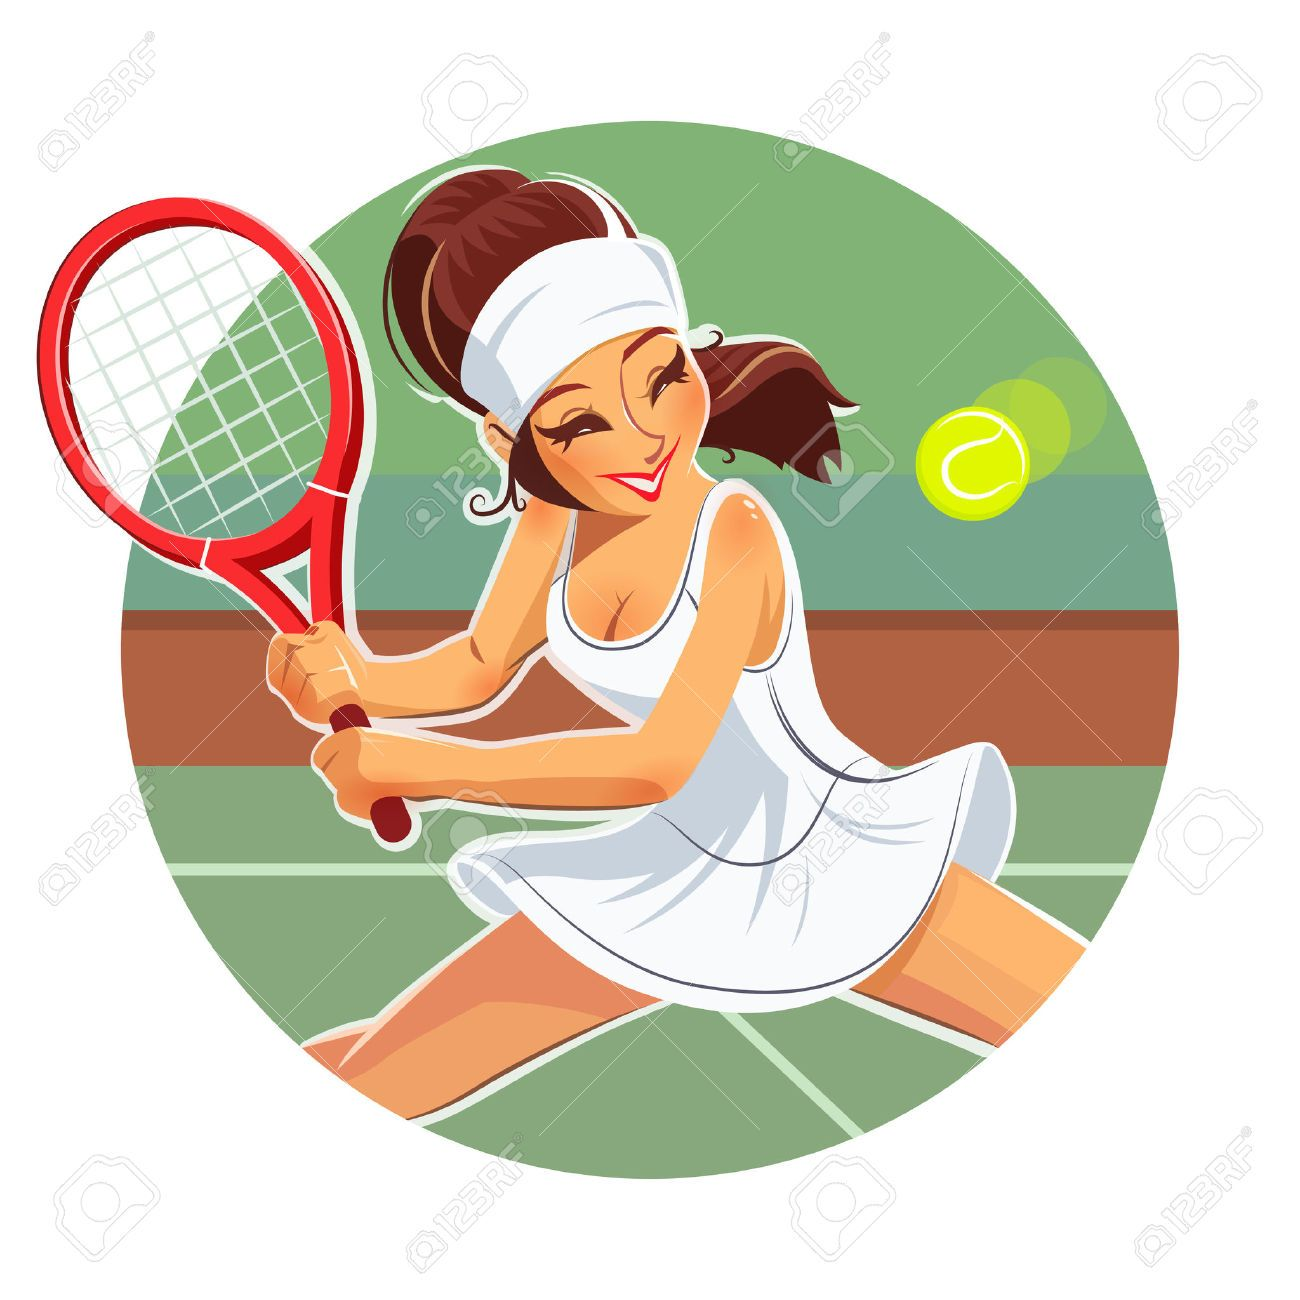 Tennis Clipart Google Search Play Tennis Girls Play Tennis Photography